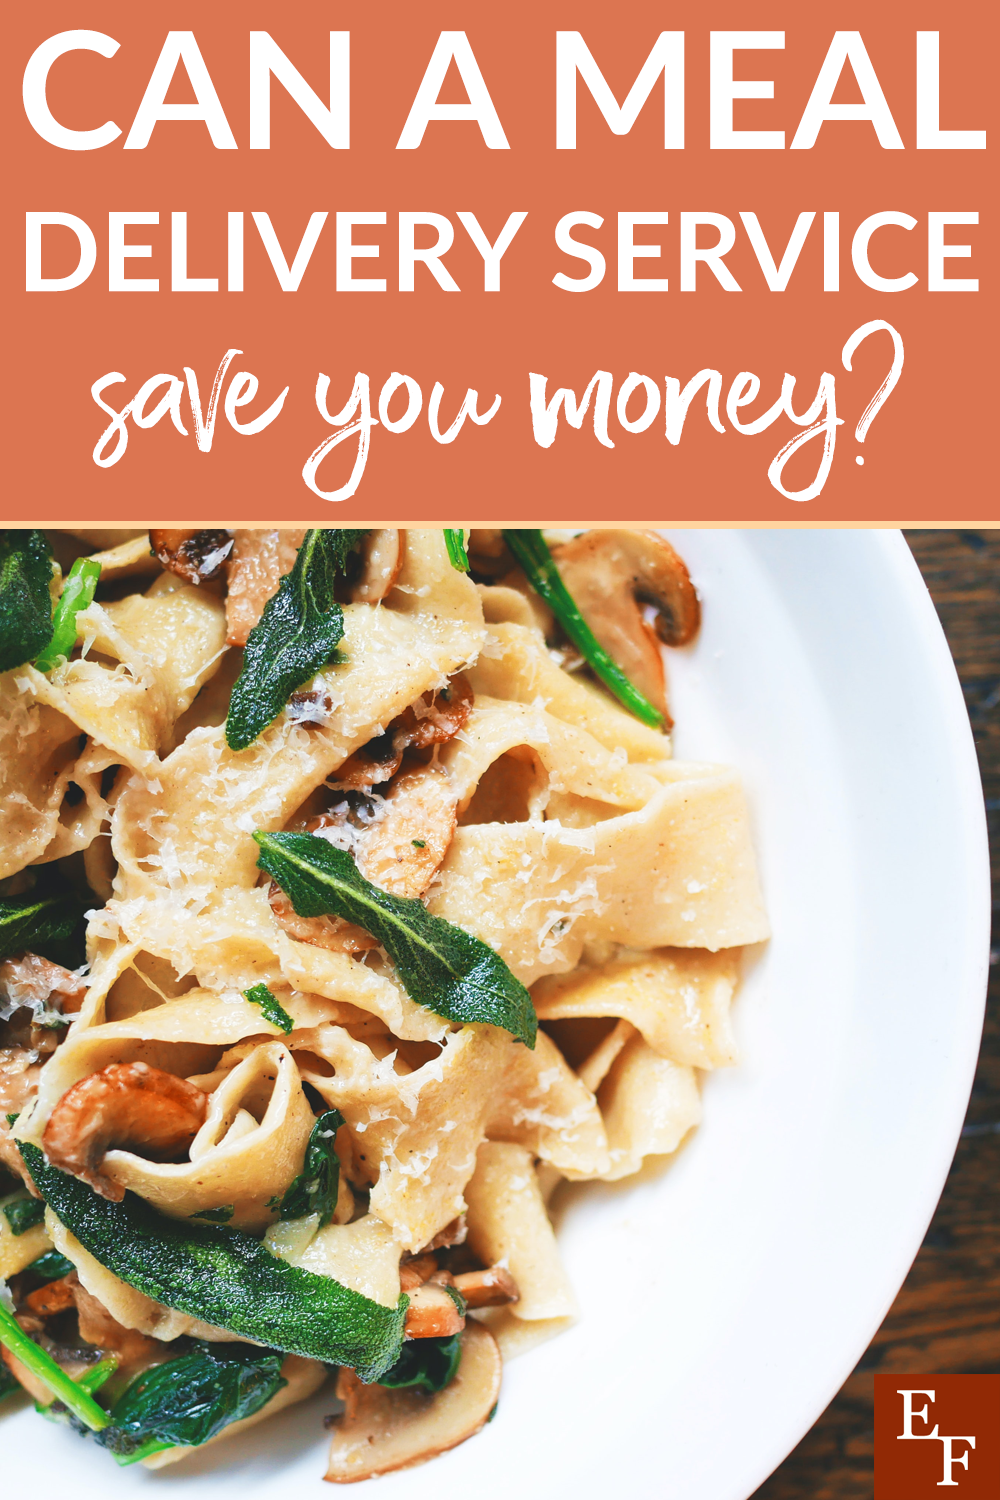 2020 had many people staying at home as much as possible. Getting a meal delivery service was one way to avoid going out. Is it worth it?